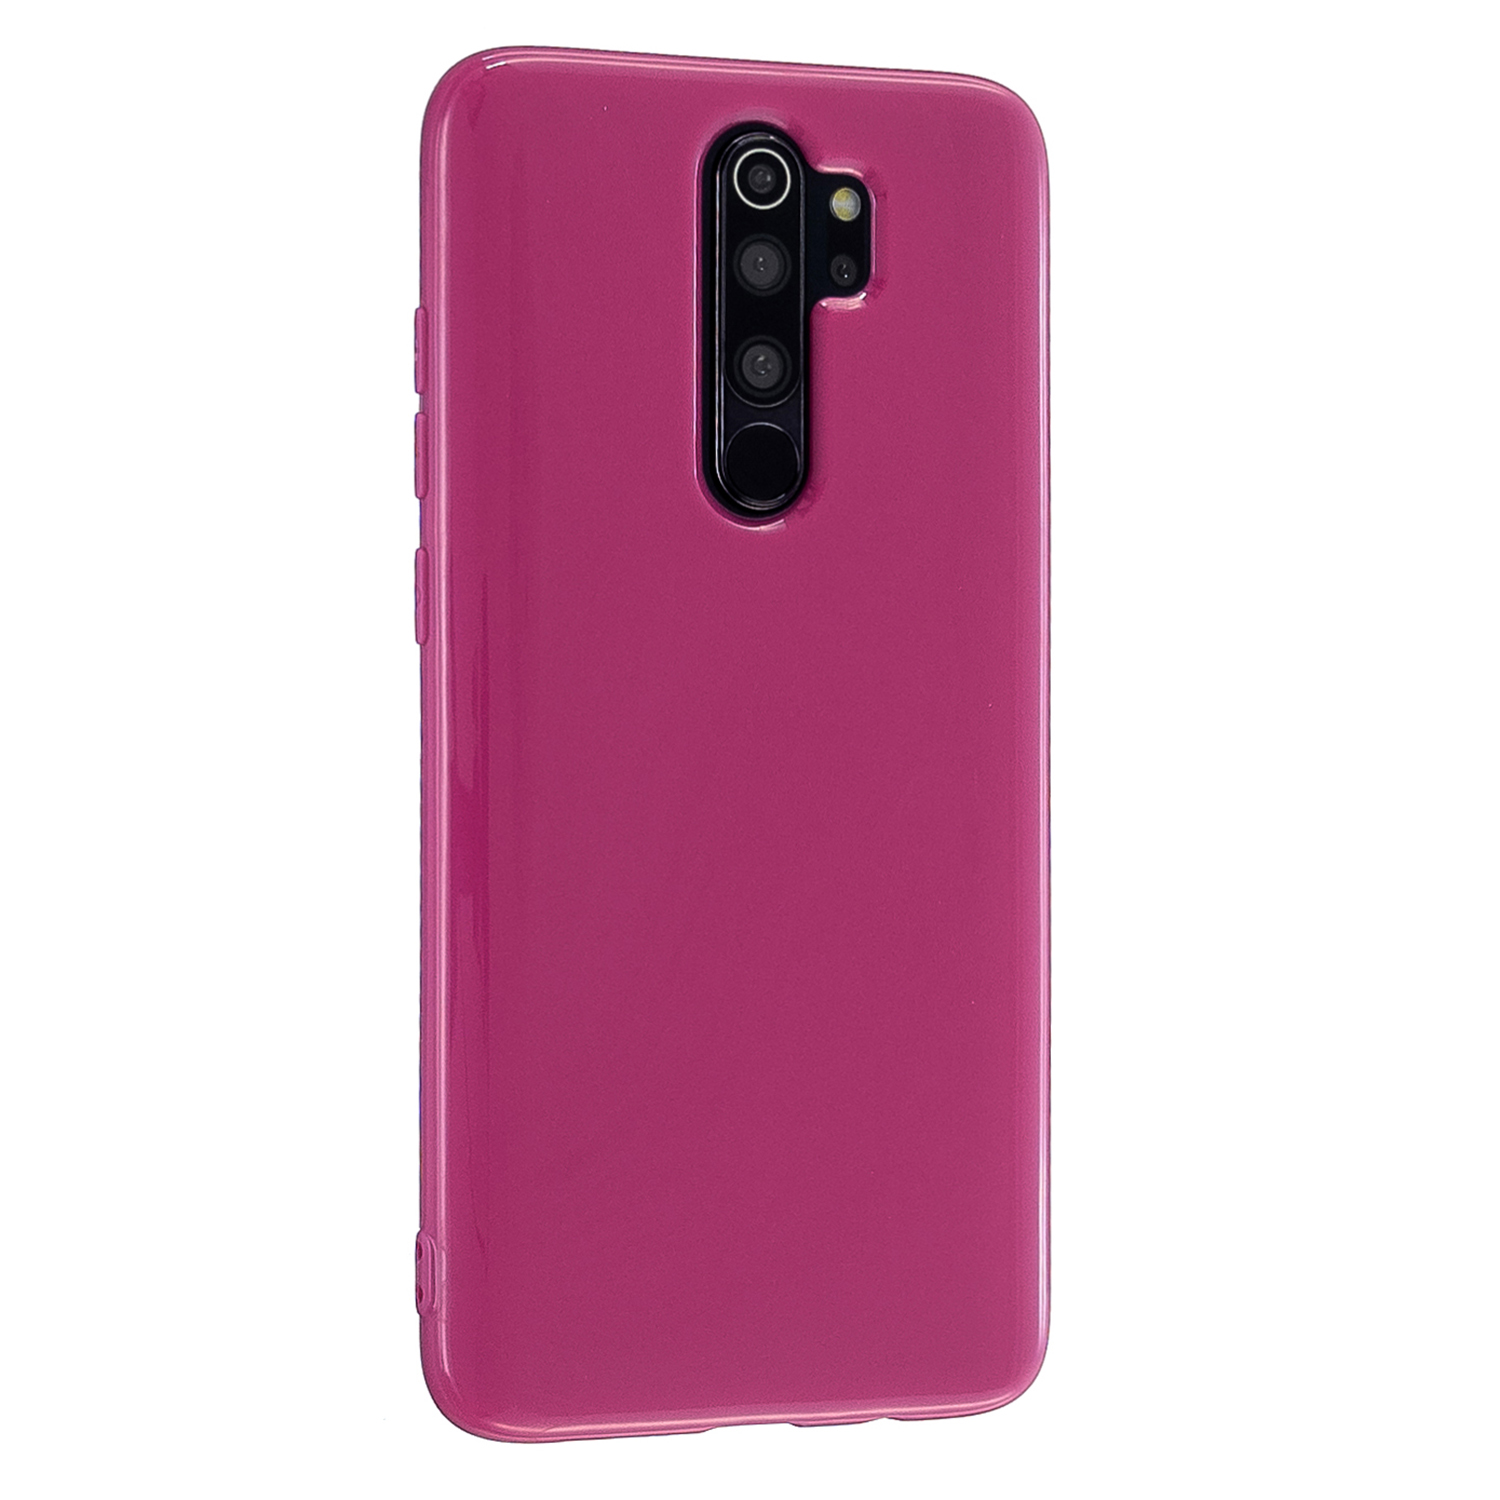 For Redmi Note 8/8 Pro Cellphone Cover 2.0mm Thickened TPU Case Camera Protector Anti-Scratch Soft Phone Shell Rose